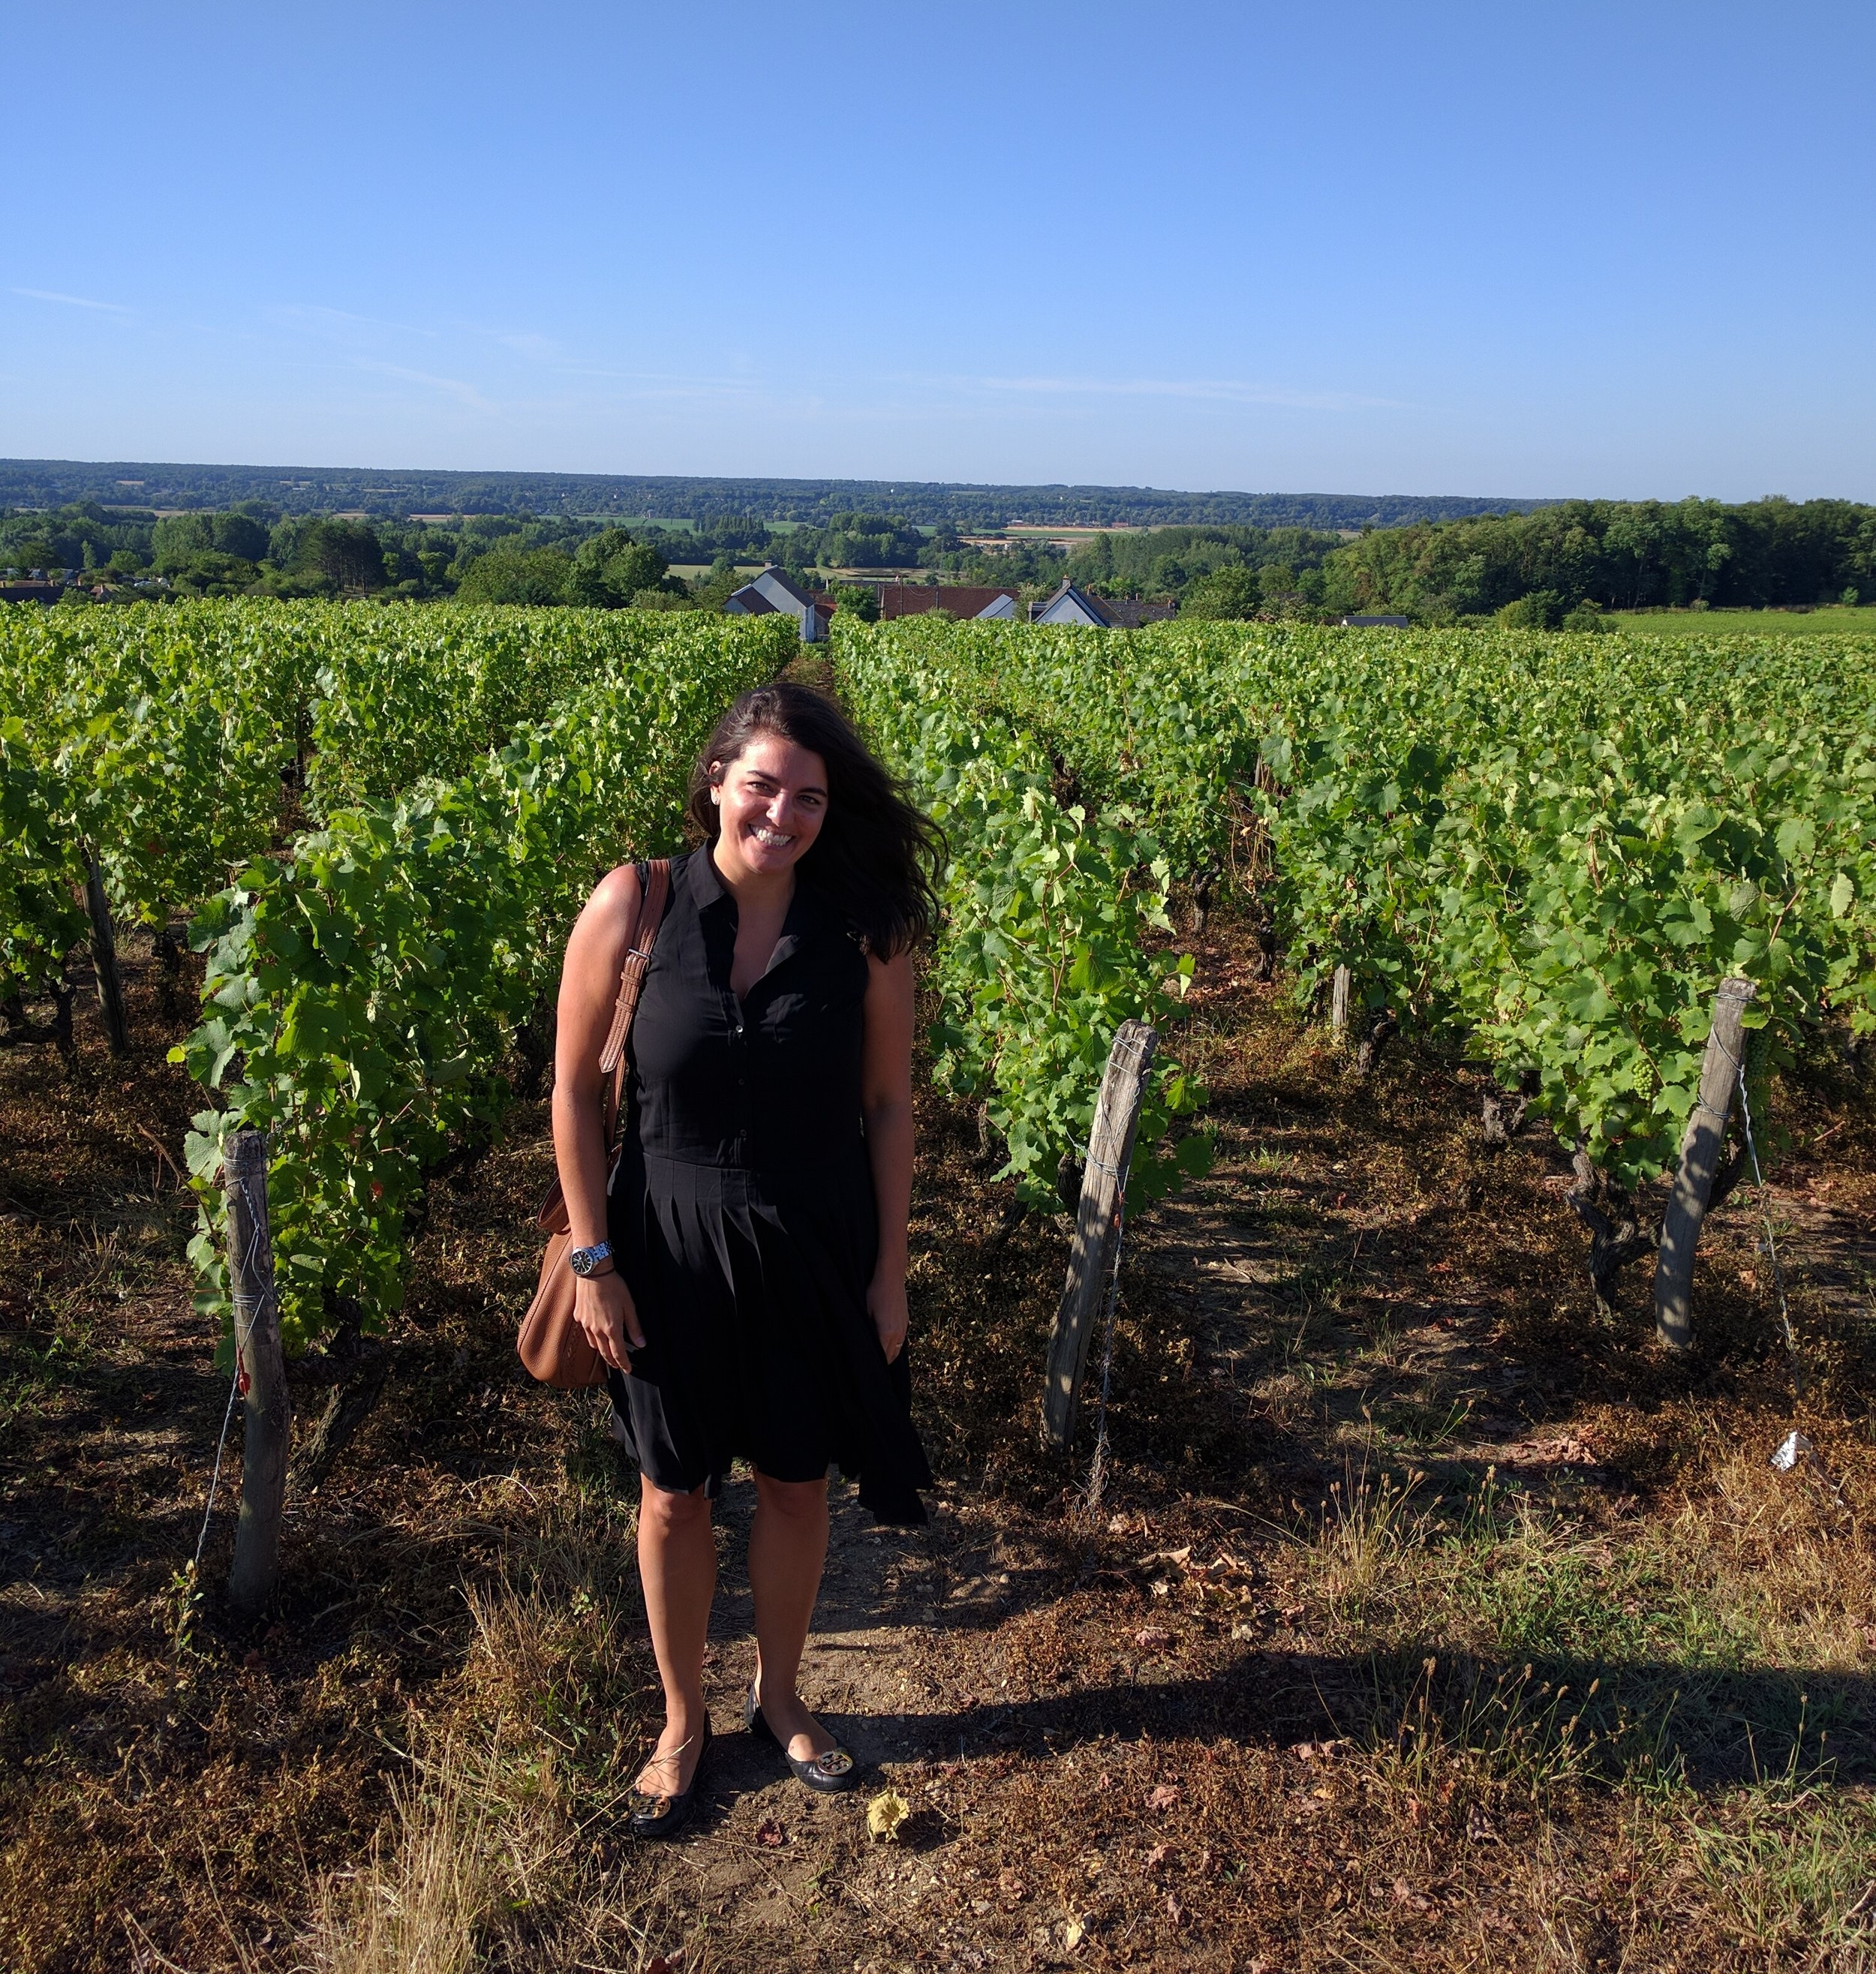 Domaine Thierry Cosme's vineyards